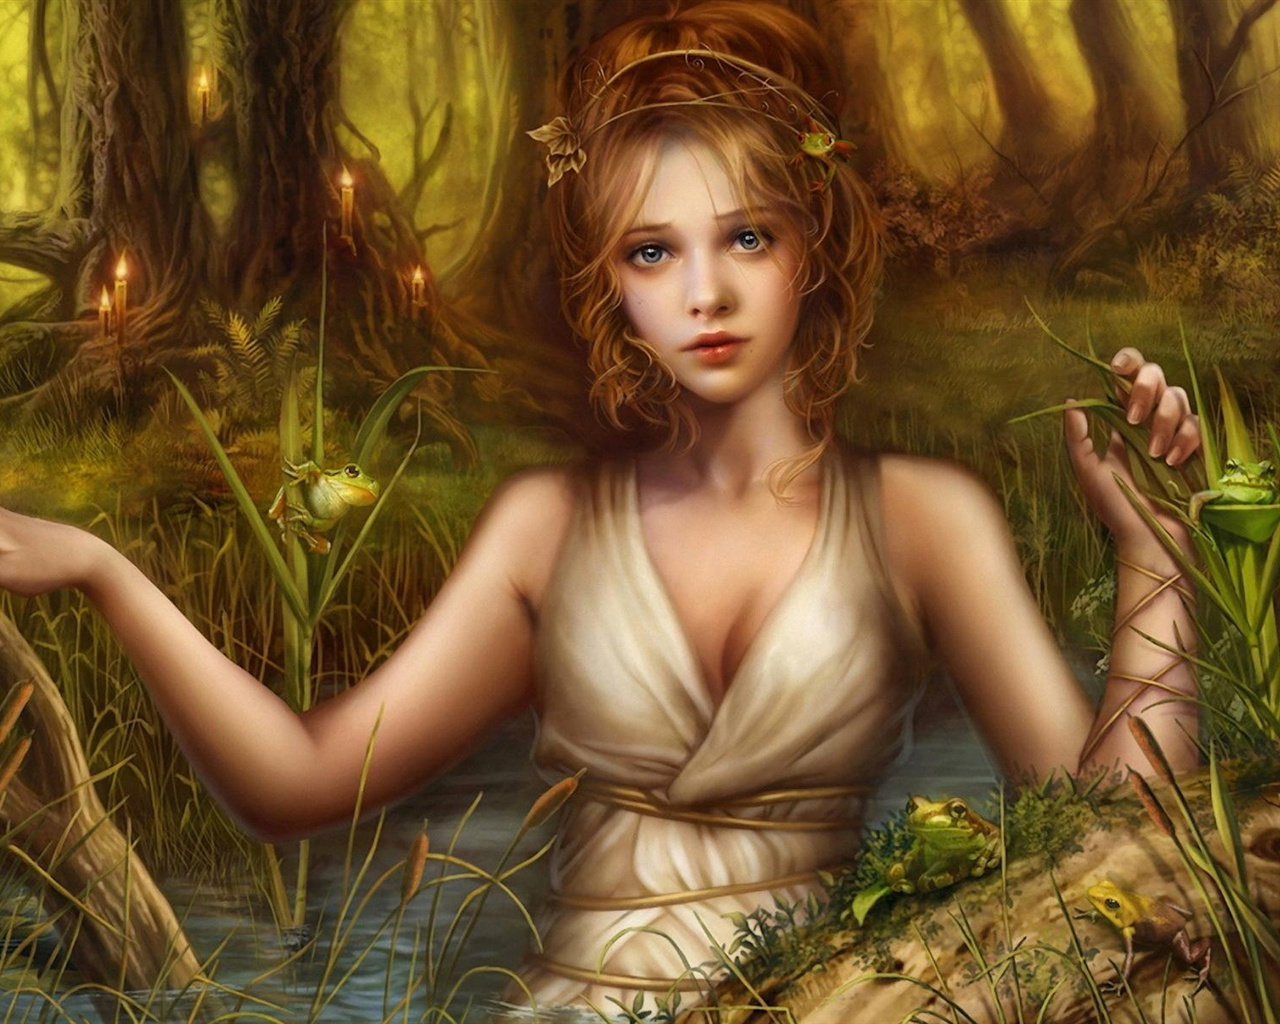 Beautiful blond fantasy girl wallpaper - 1280x1024